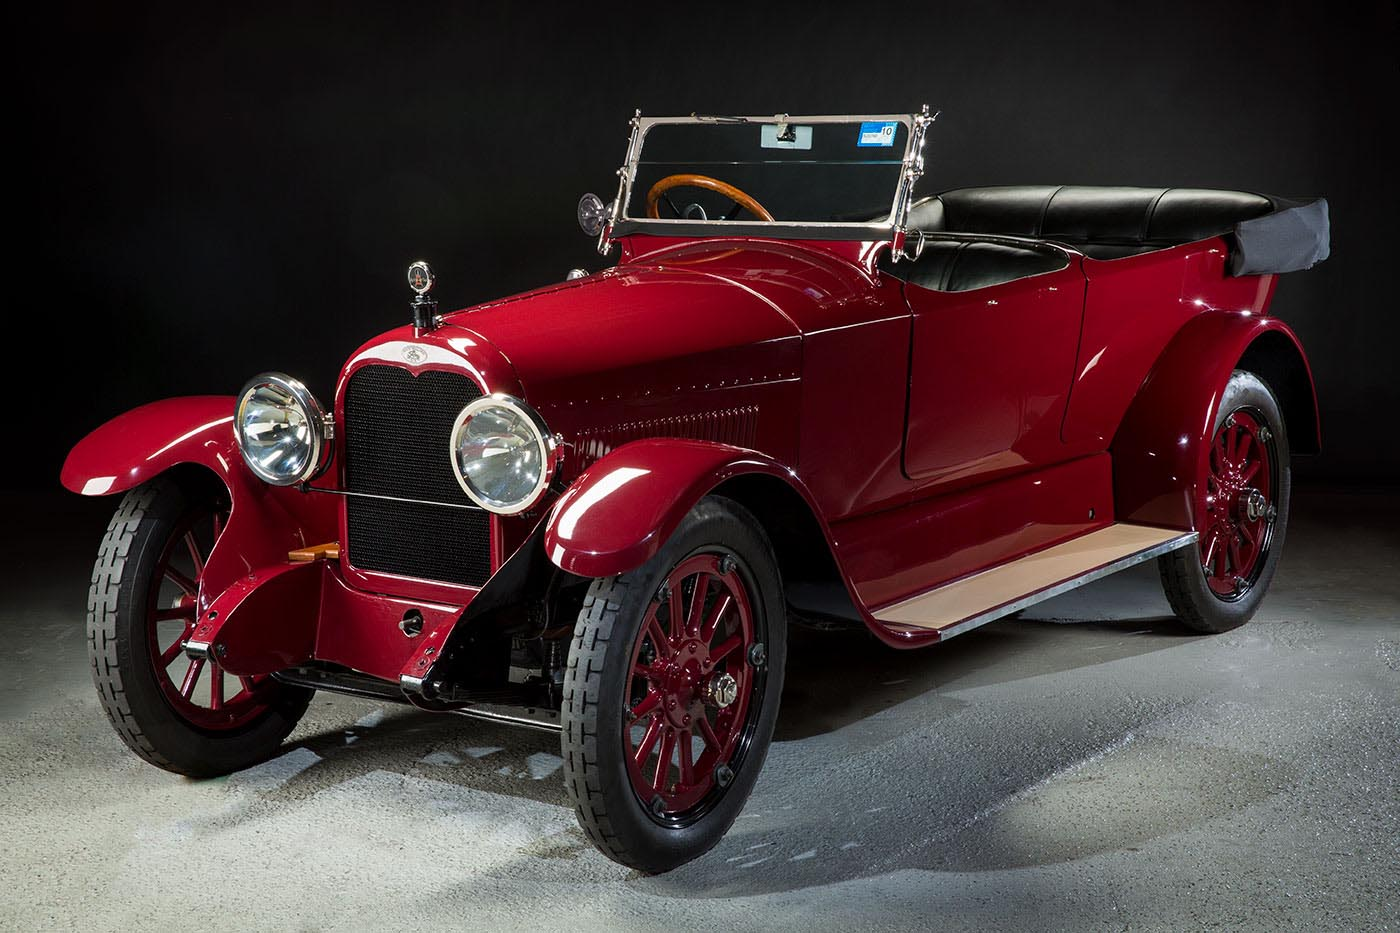 Antique red car being displayed. - click to view larger image